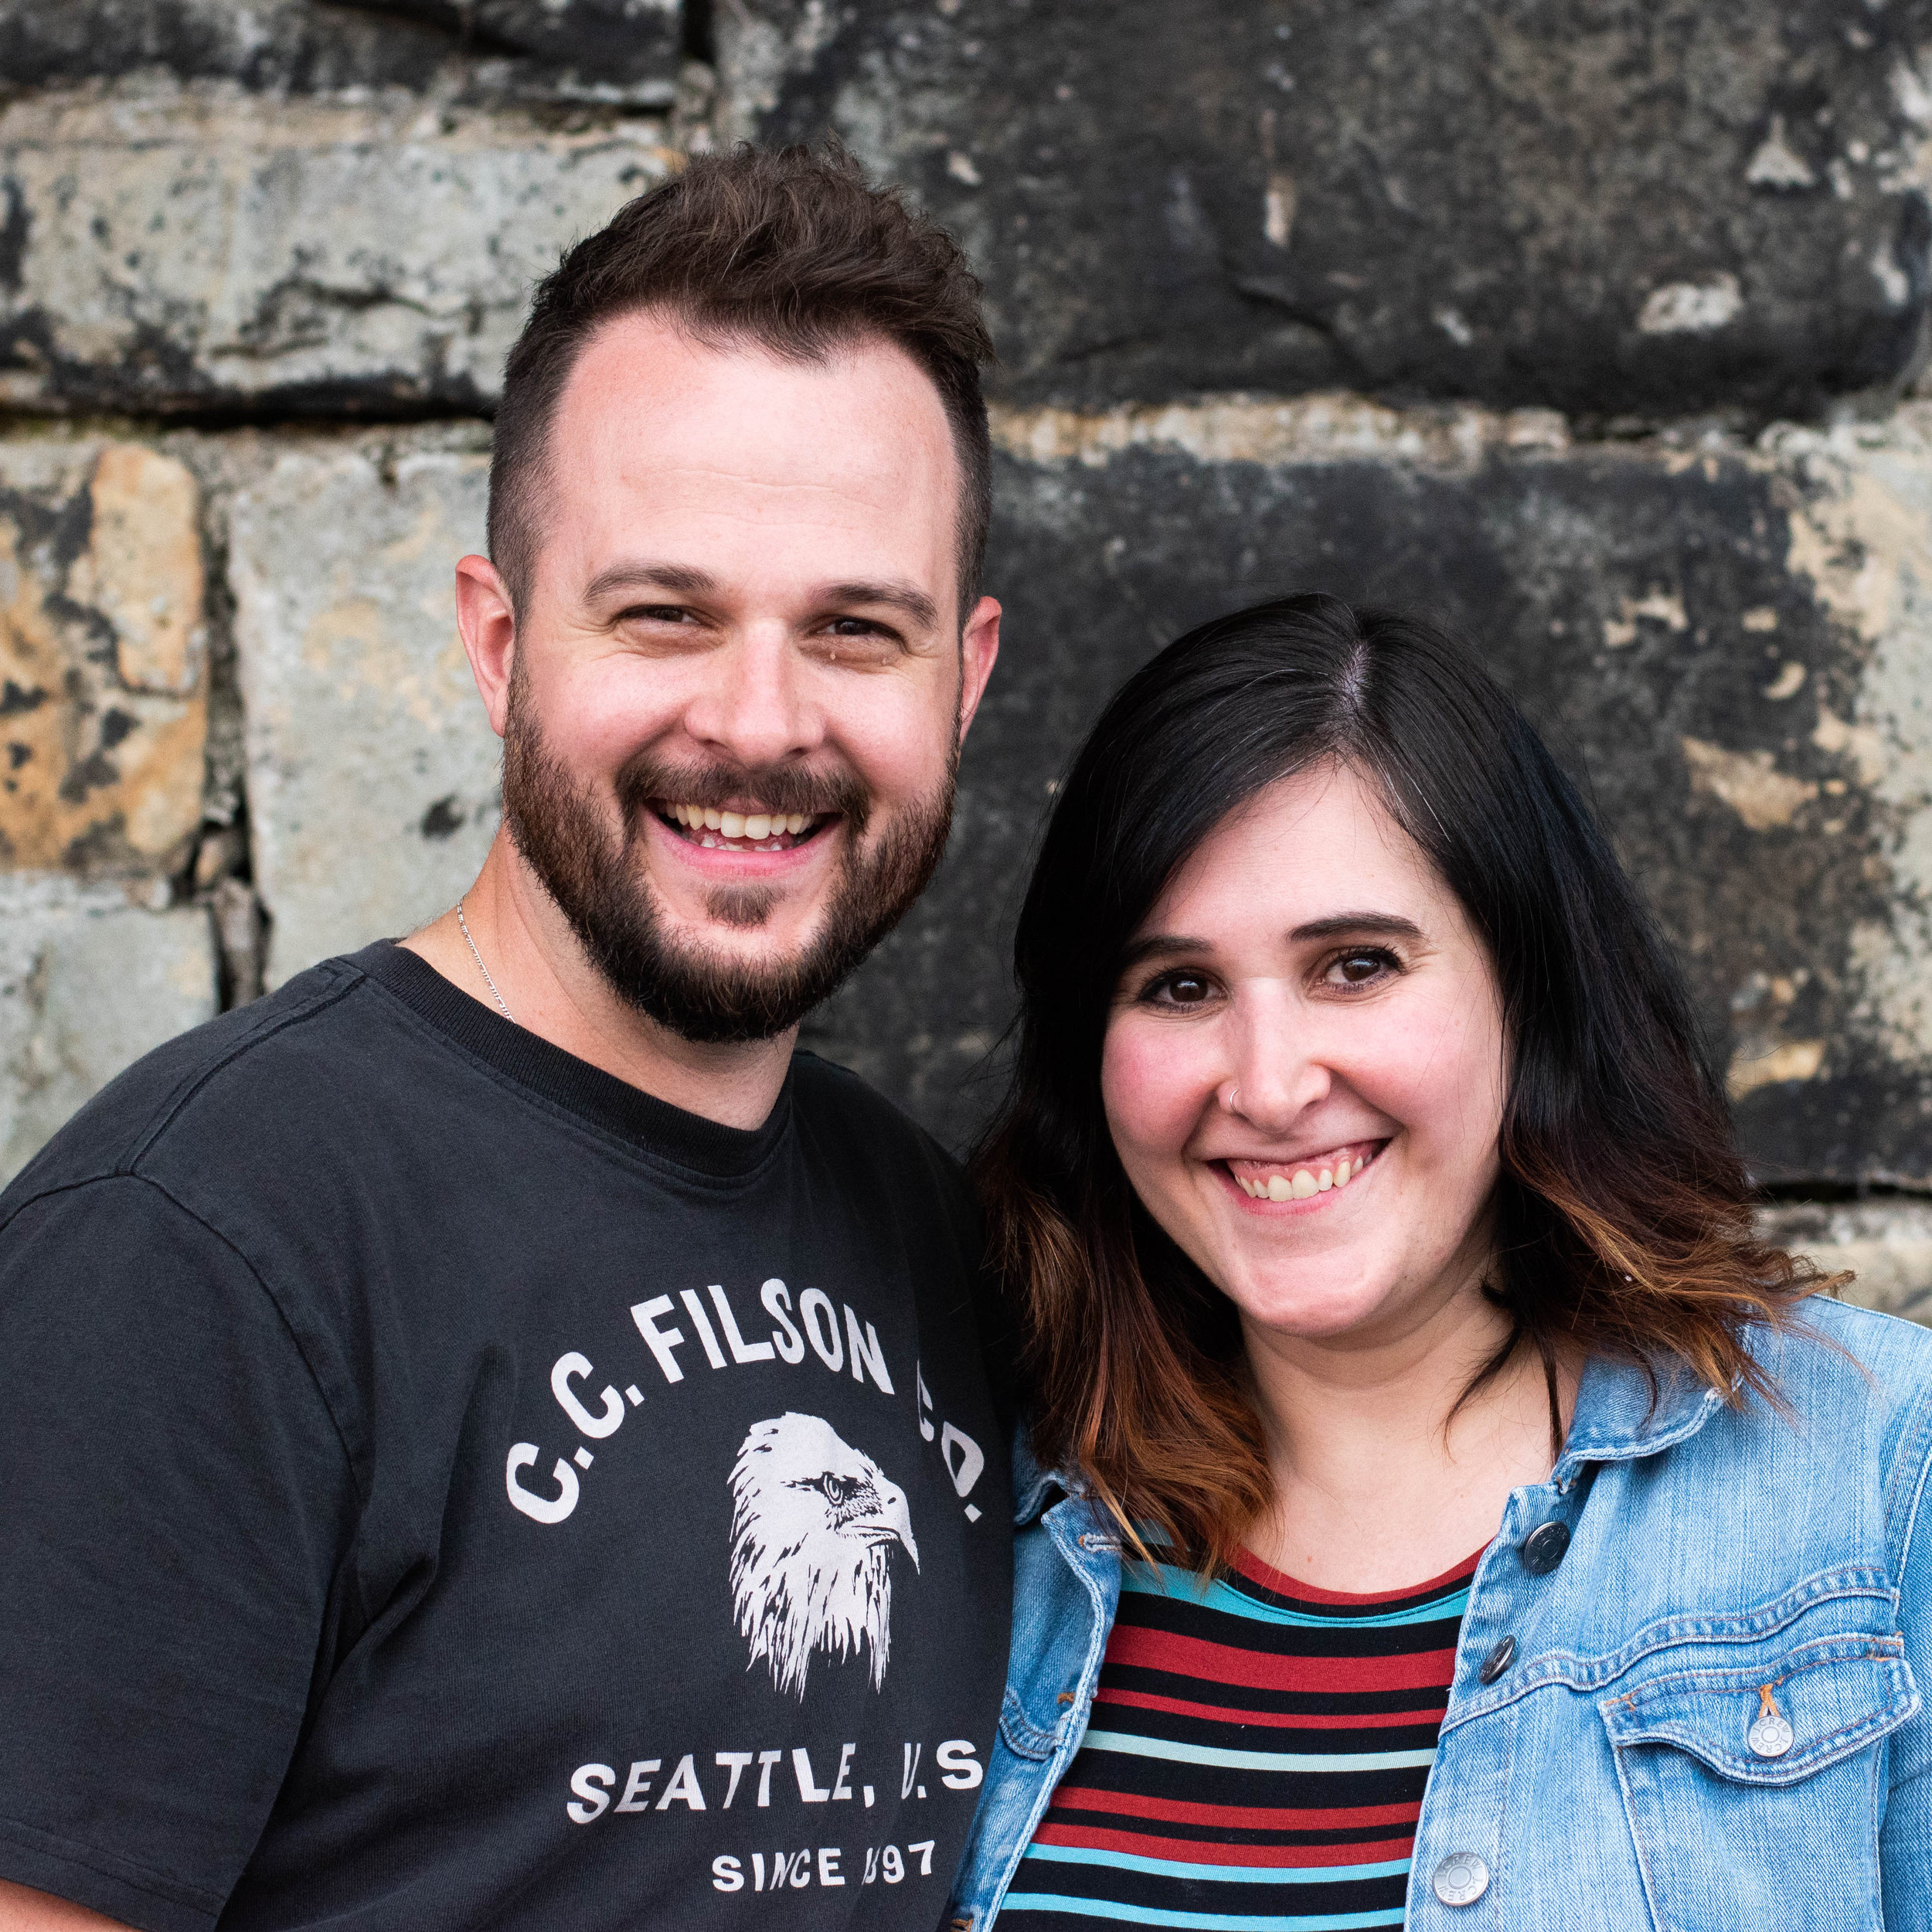 South Side Campus Pastors, David & Natalie Schollaert   David and Natalie have been living in the Pittsburgh area for nearly ten years since relocating from Baltimore, MD. David was raised on the mission field in Belo Horizonte, Brazil while Natalie grew up in Bel Air, MD. They have served for multiple years and in various capacities within the local church, and have a passion to see lives transformed as they encounter the love of Jesus. They love good food, a great cup of espresso, and time well spent with good company. FUN fact - Both David and Natalie were born in the same hospital in Springfield, MA and delivered by the same doctor but never met until David spotted his bride-to-be while attending college in Baltimore, MD.